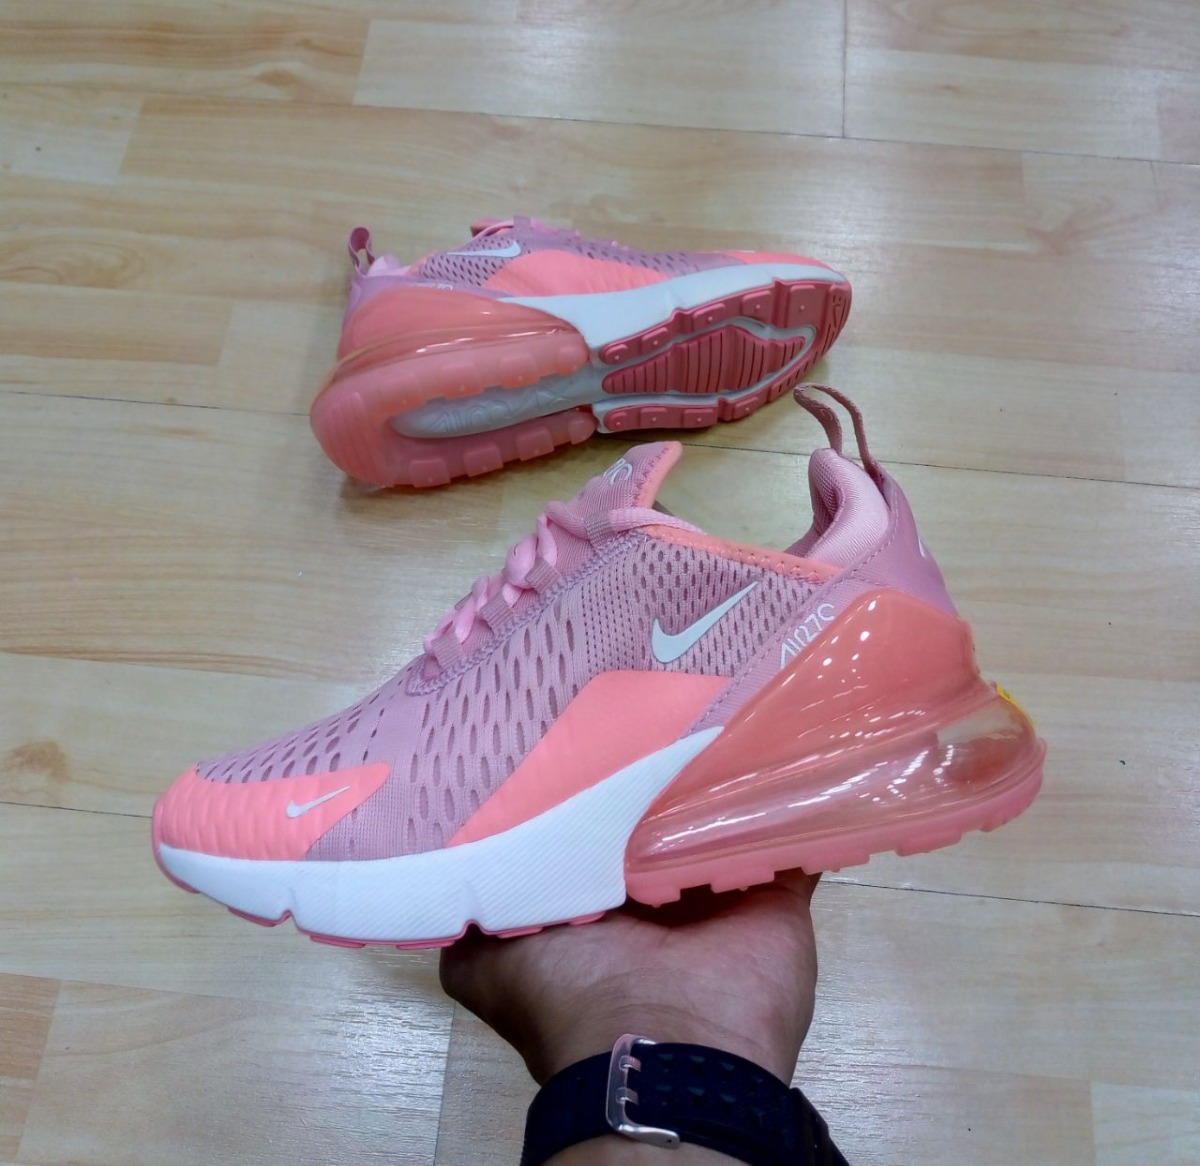 8605624f55558 ... discount code for zapatillas nike air max 270 mujer. cargando zoom.  a5726 e2fee